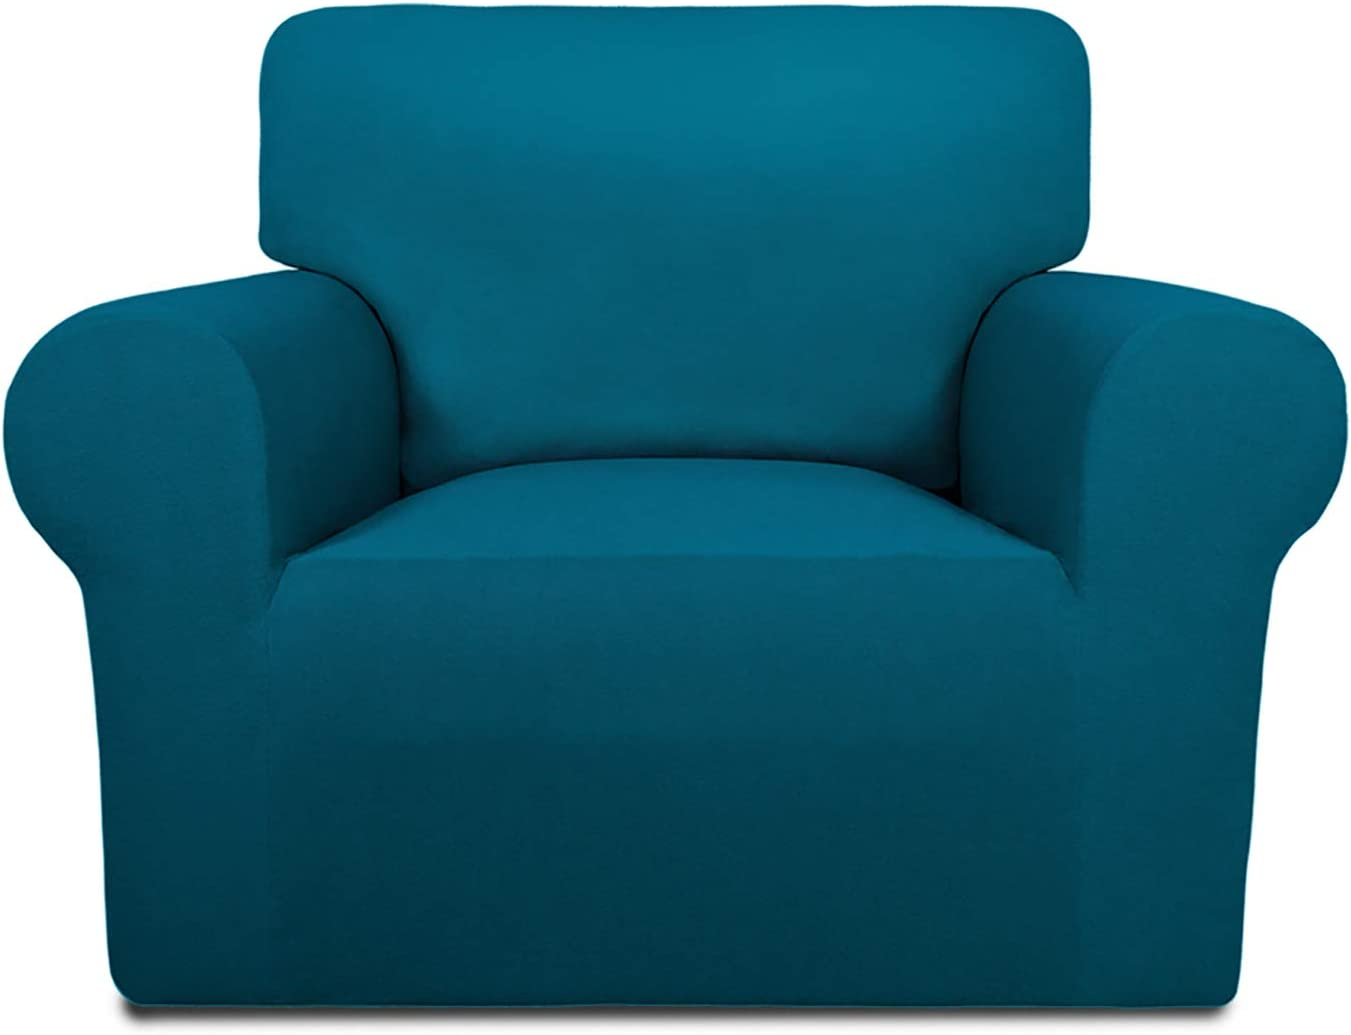 PureFit Super Stretch Chair Sofa Slipcover – Spandex Non Slip Soft Couch Sofa Cover, Washable Furniture Protector with Non Skid Foam and Elastic Bottom for Kids, Pets (Chair,Peacock Blue)